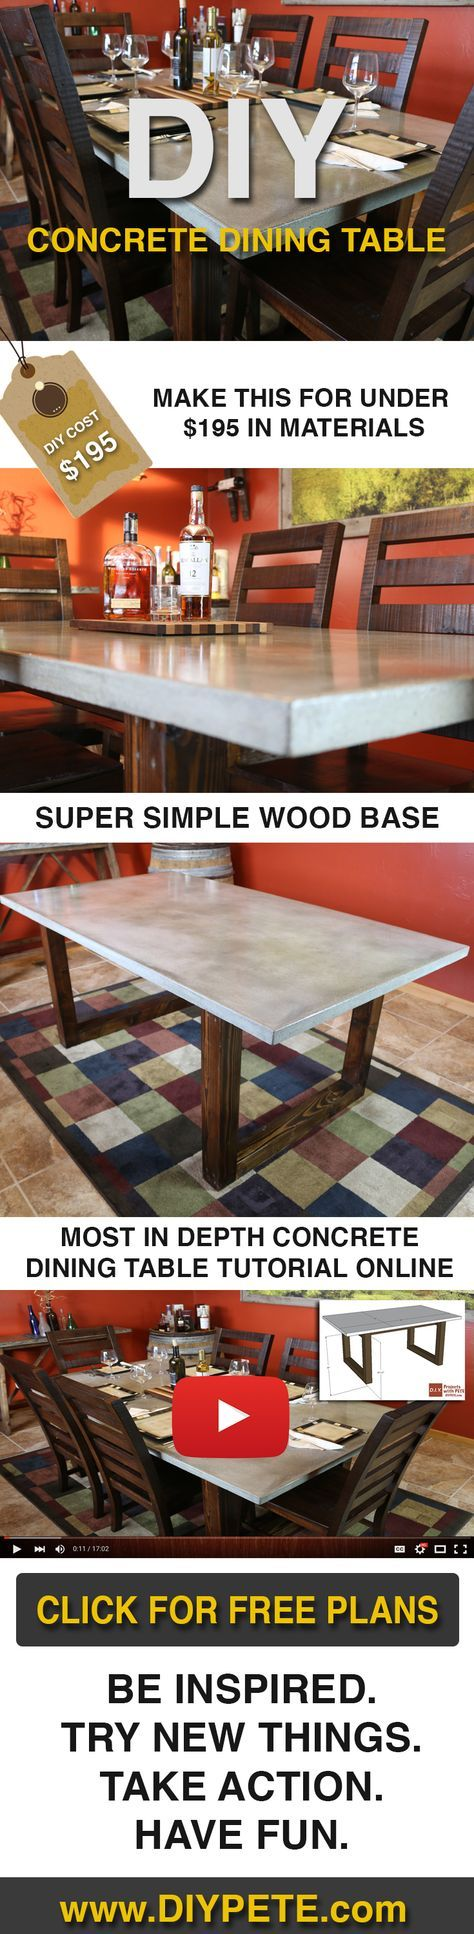 Make this Concrete Dining Table for under $200! Free DIY plans, video tutorial, and post at DIYPETE.com. Click on the photo for all the info, and re-pin to share with your friends!